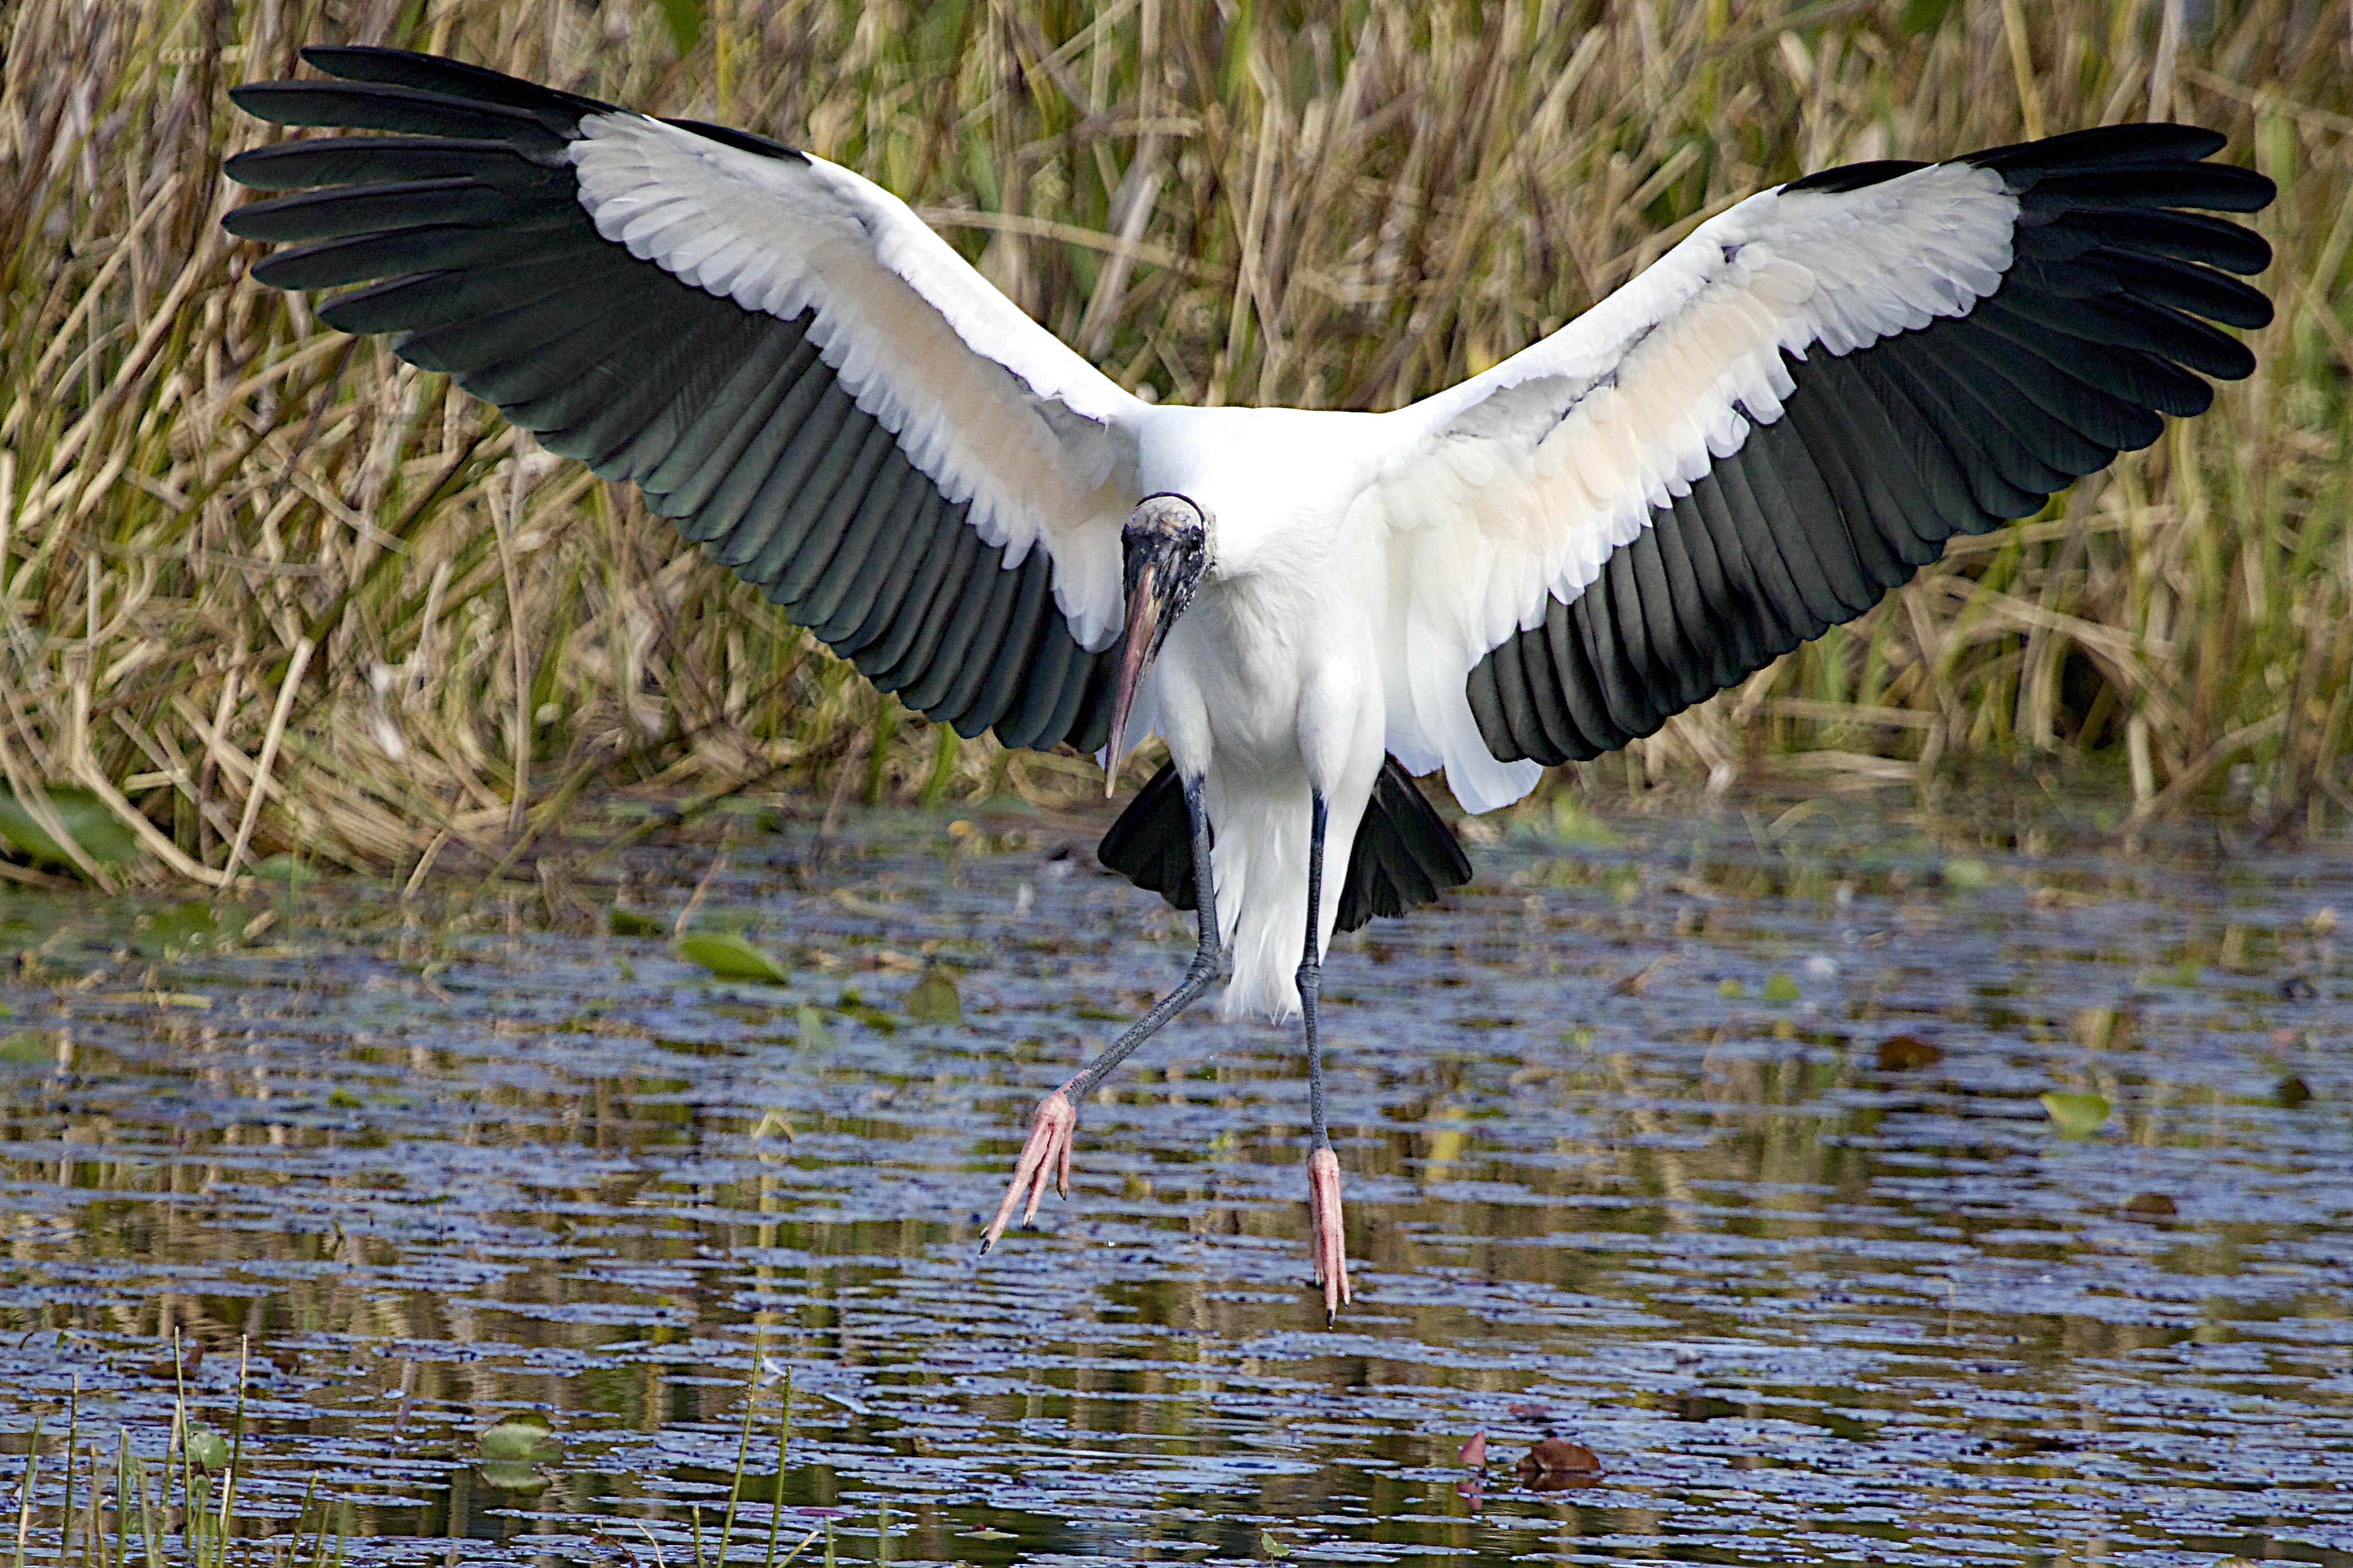 Recovering Wood Stork down-listed from Endangered to Threatened